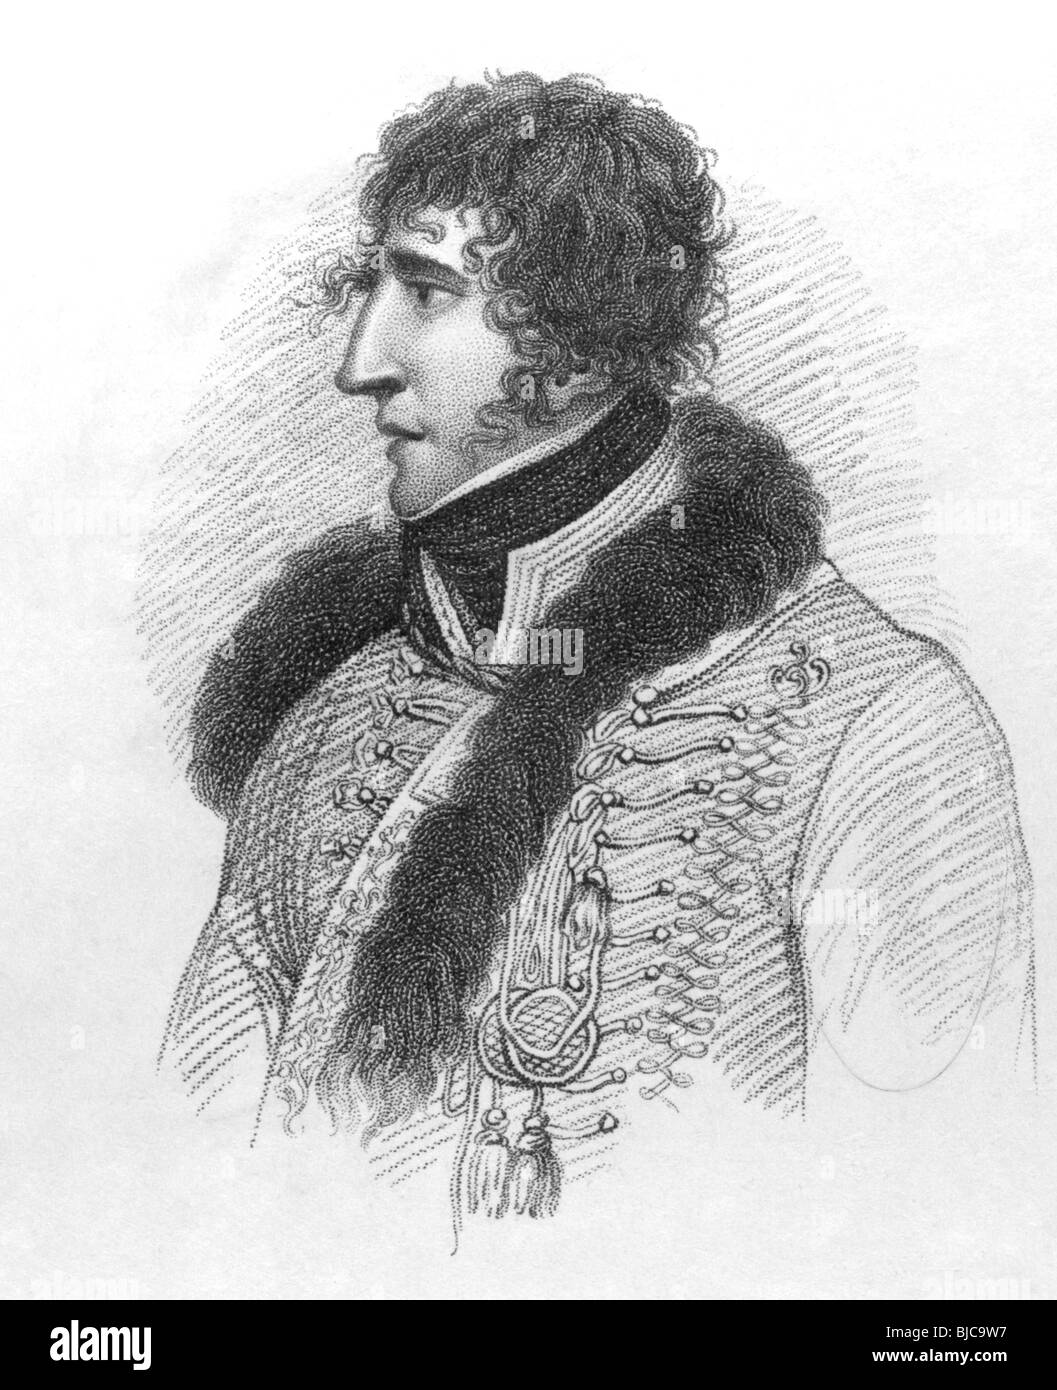 General Duroc (1772-1813) on engraving from the 1800s. French general associated with Napoleon. - Stock Image